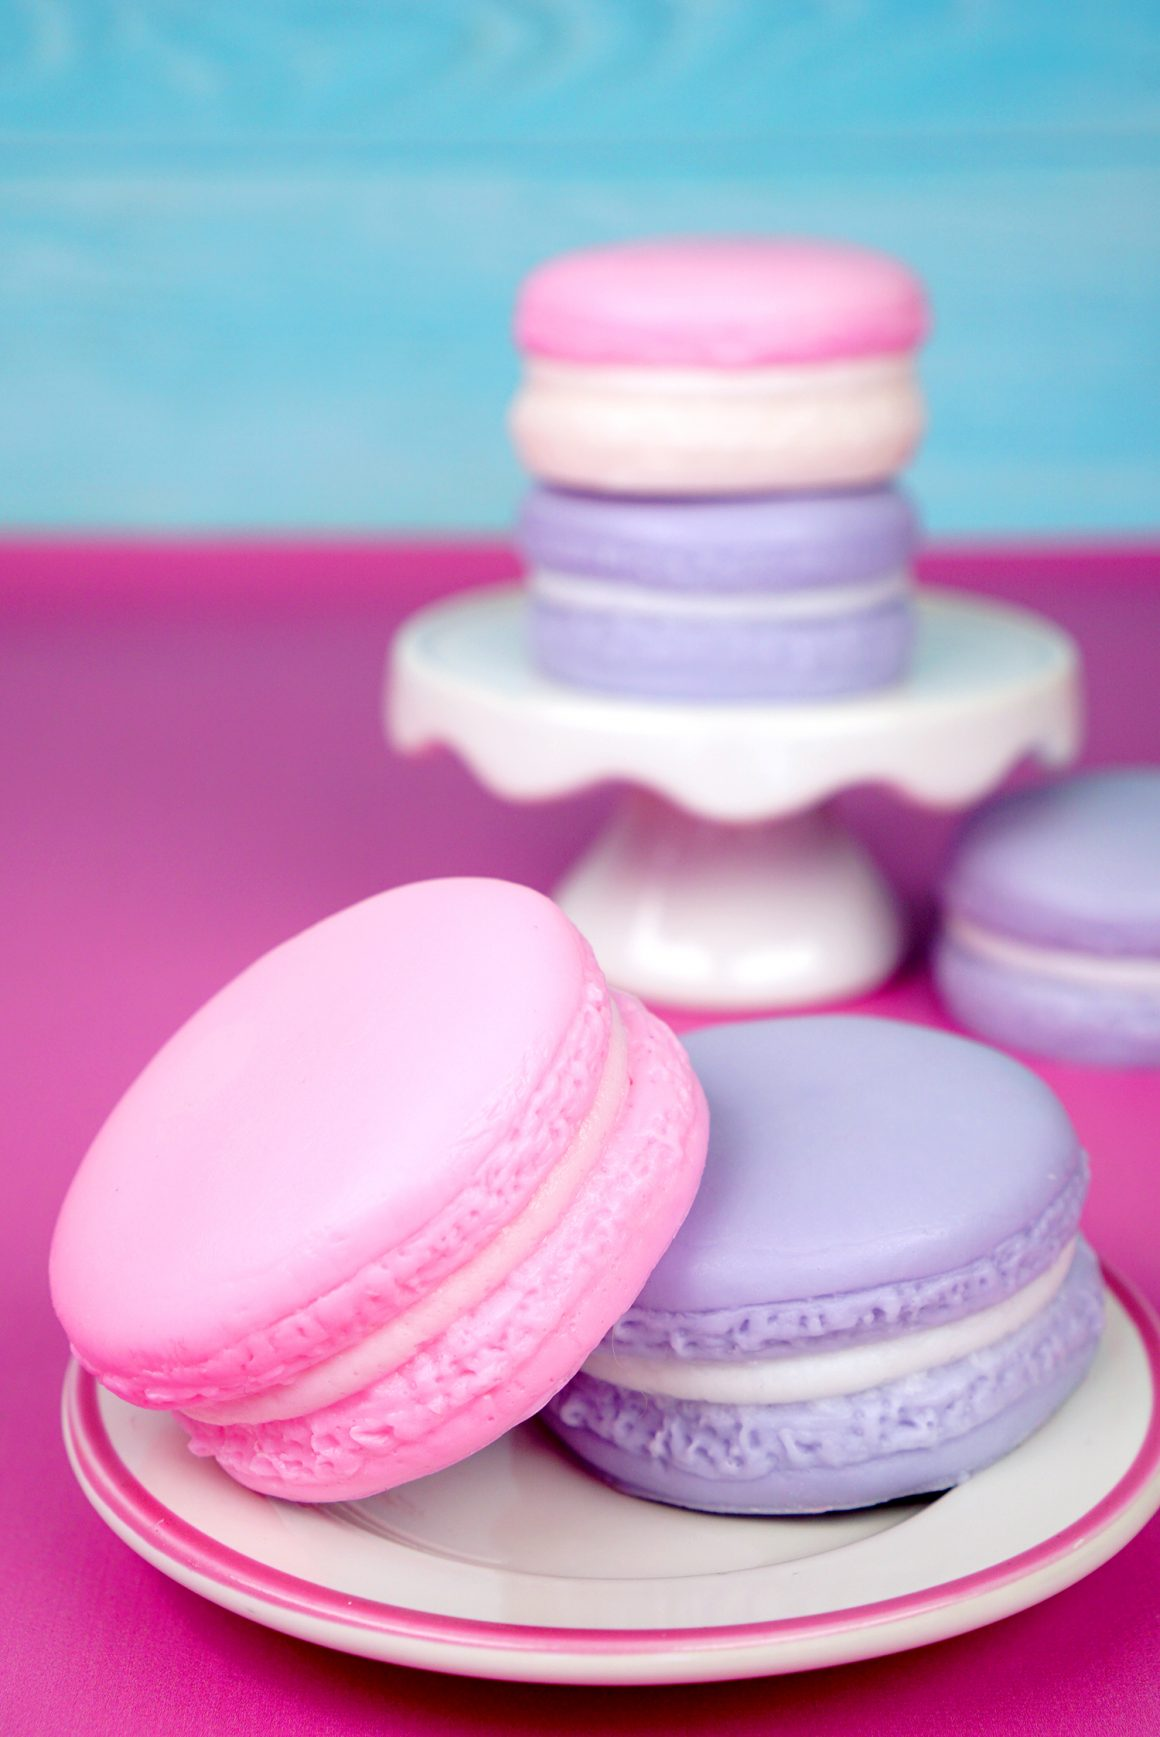 37+ Handmade Gift Ideas For Mom That She's Guaranteed To Love: DIY Macaron Soap from Happiness Is Handmade